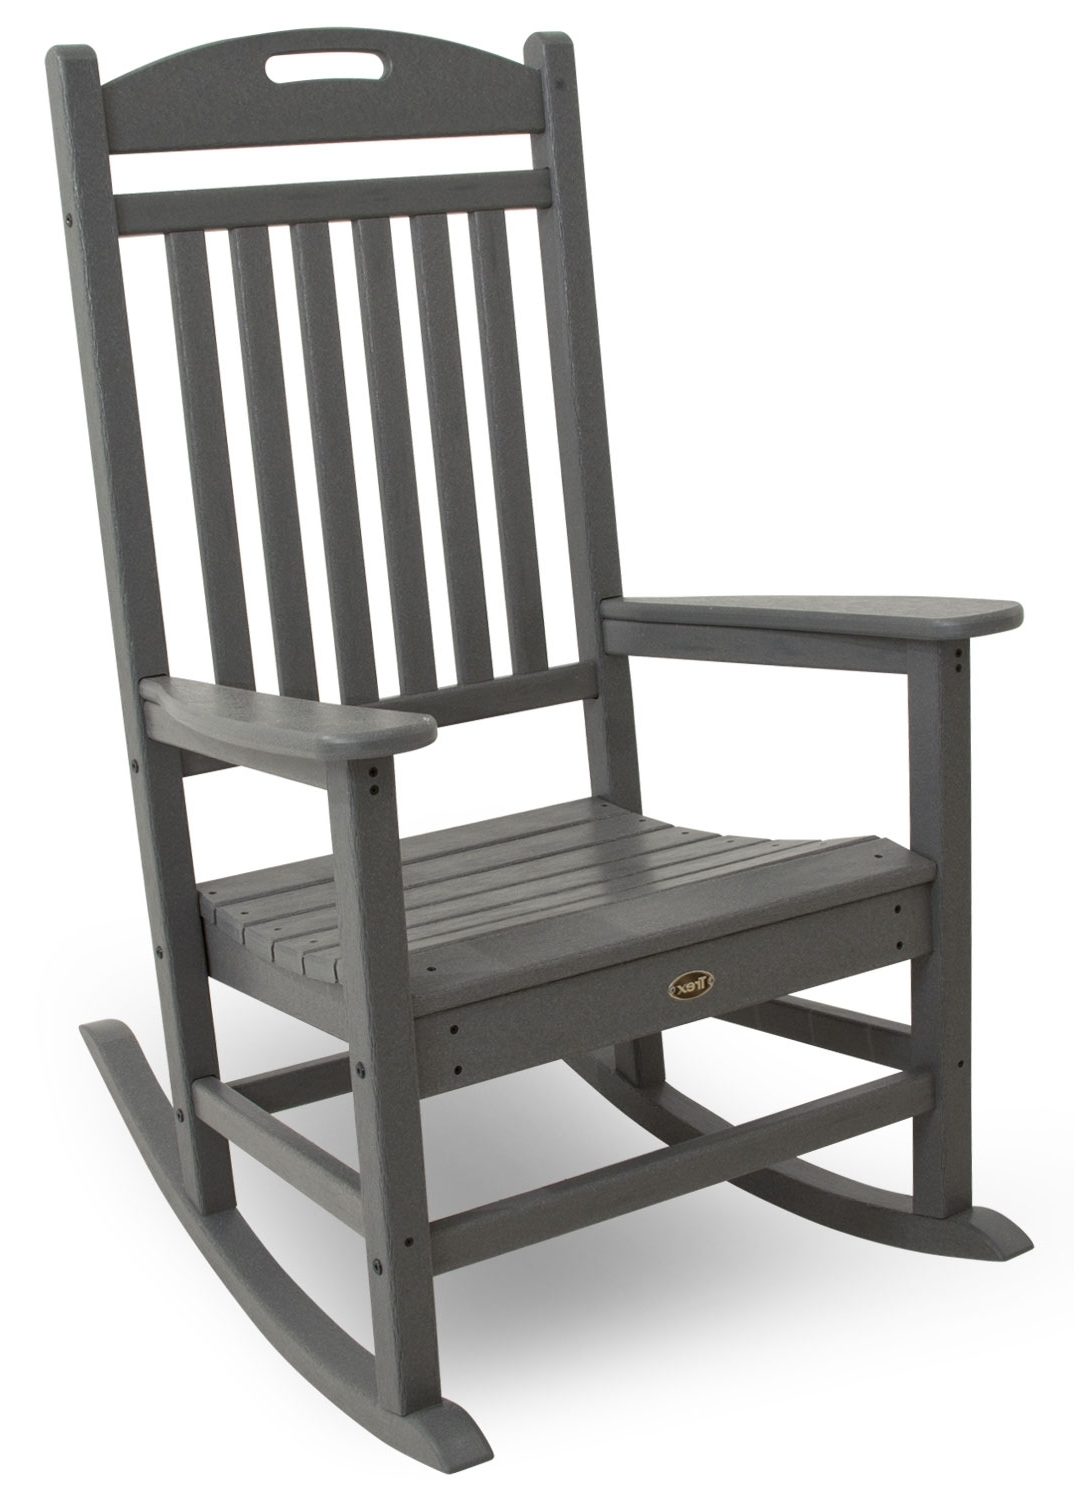 Best And Newest Yacht Club Rocking Chair Pertaining To Patio Rocking Chairs With Cushions (View 10 of 20)